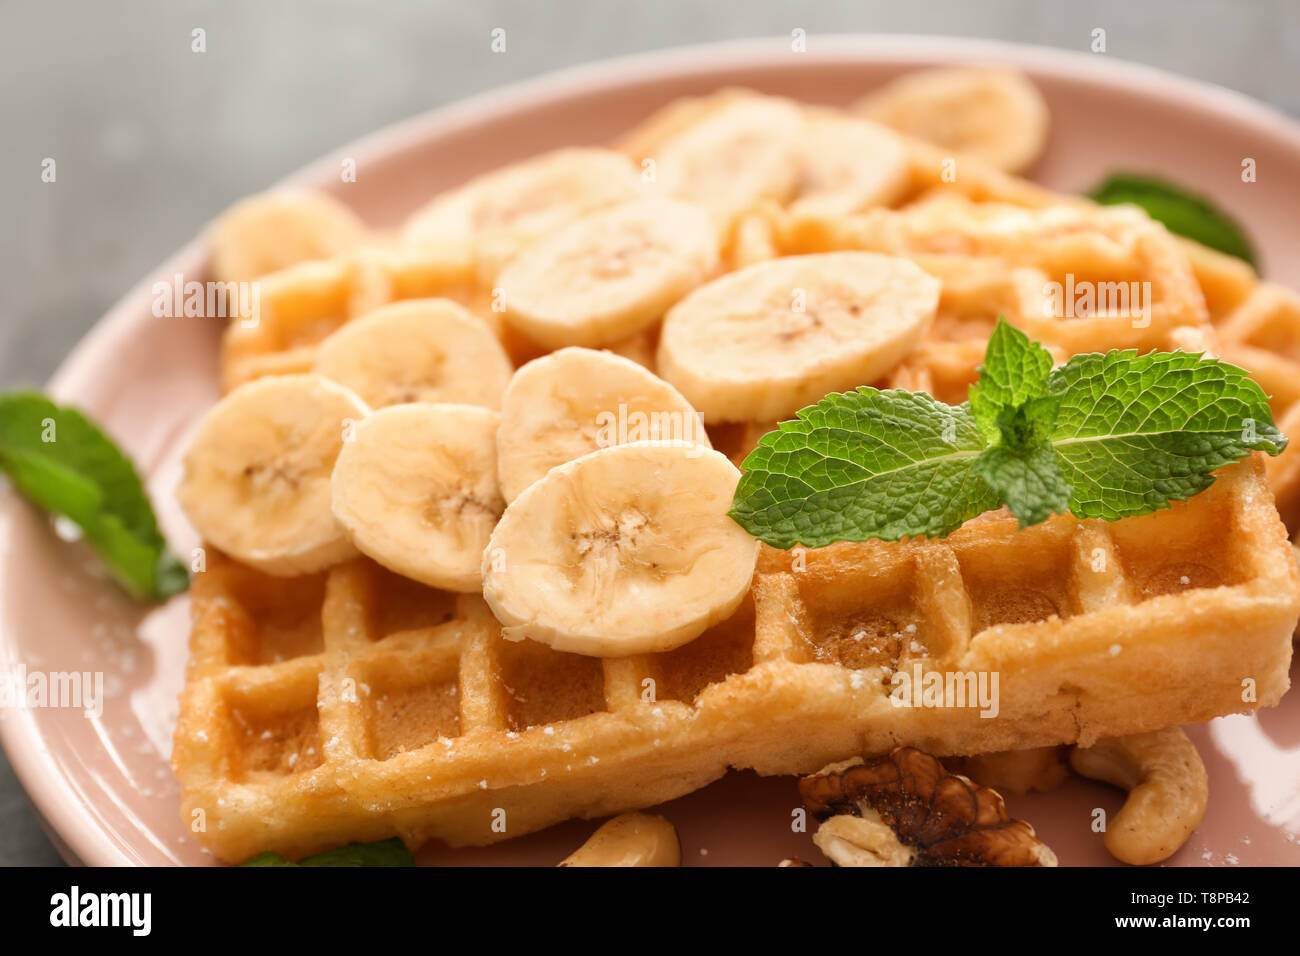 Delicious waffles with banana slices and nuts on plate, closeup - Stock Image